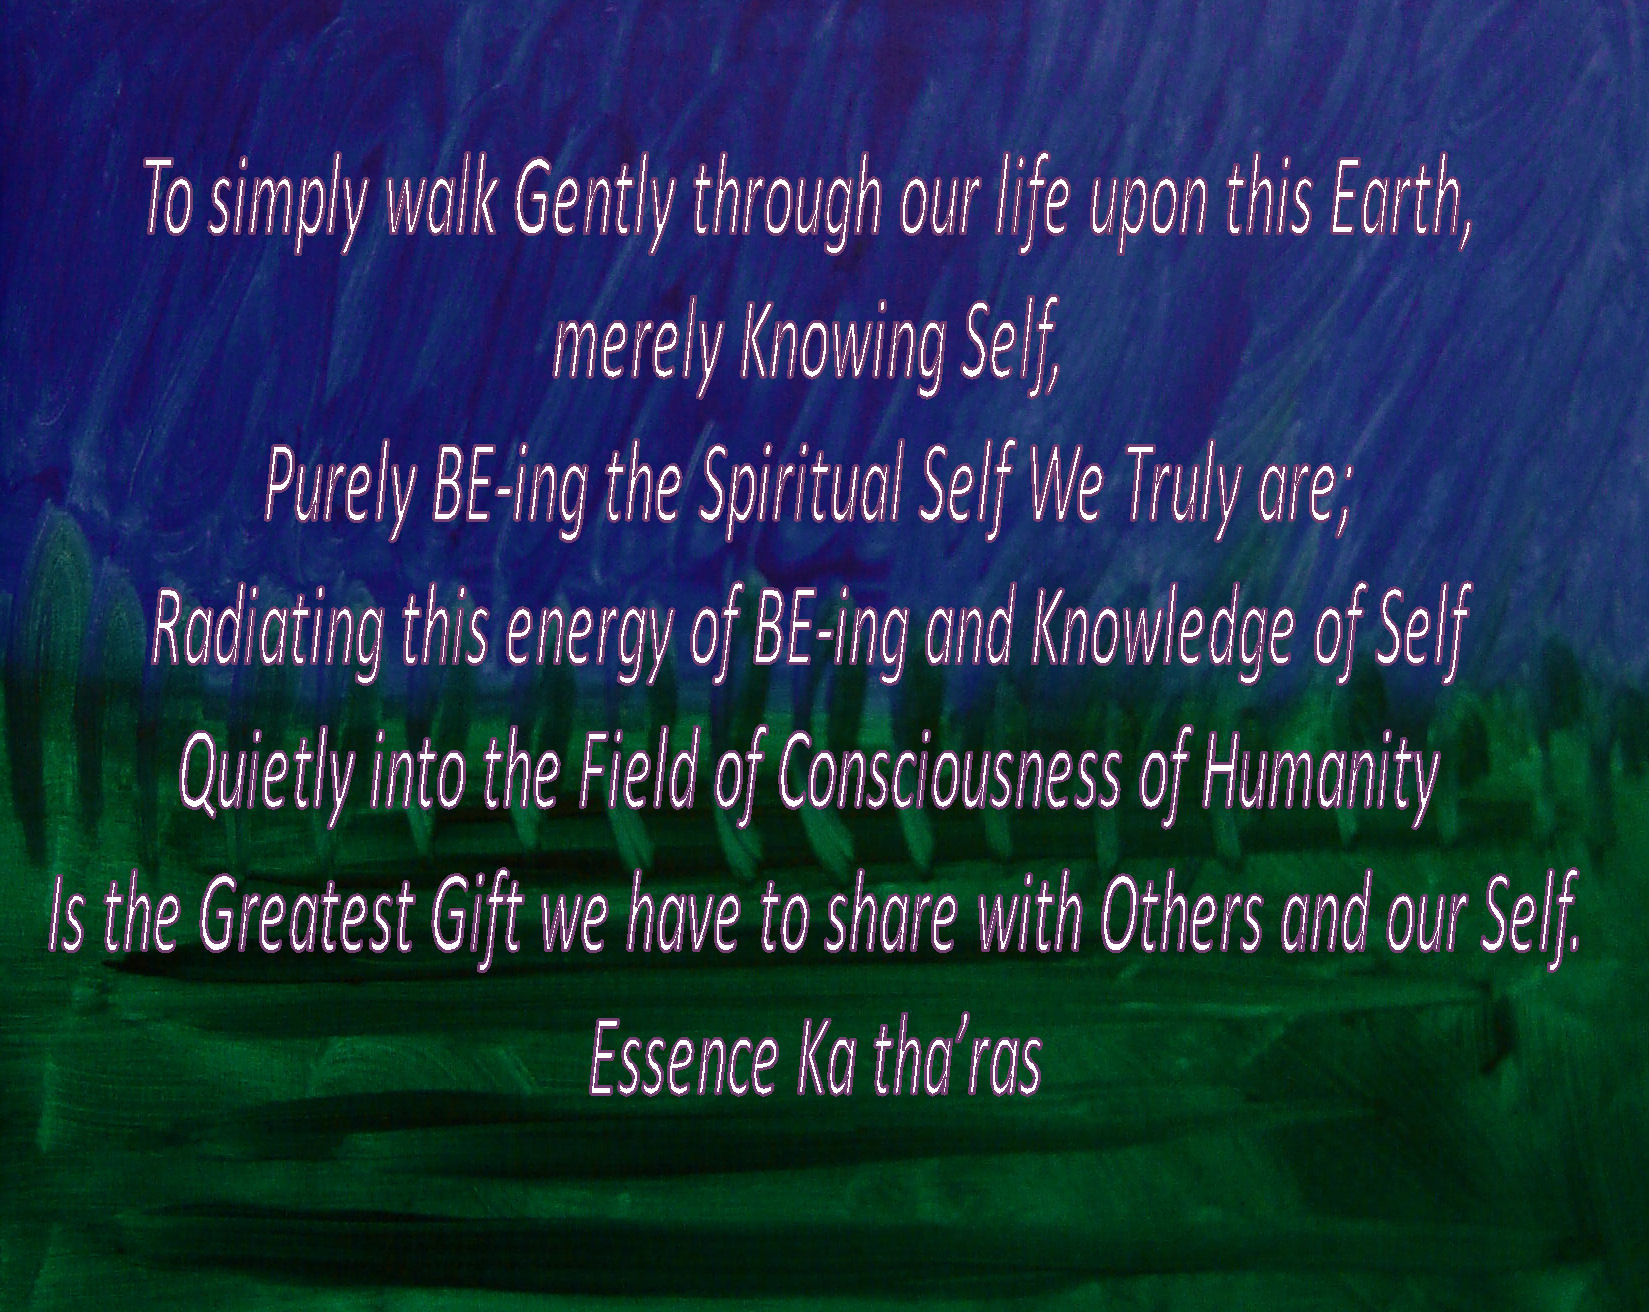 To simply walk Gently through our life upon this Earth, merely Knowing Self, and Purely BE-ing the Spiritual Self We Truly are; Radiating this energy of BE-ing and Knowledge of Self Quietly into the Field of Consciousness of Humanity is the Greatest Gift we have to share with Others and our Self. Essence Ka tha'ras